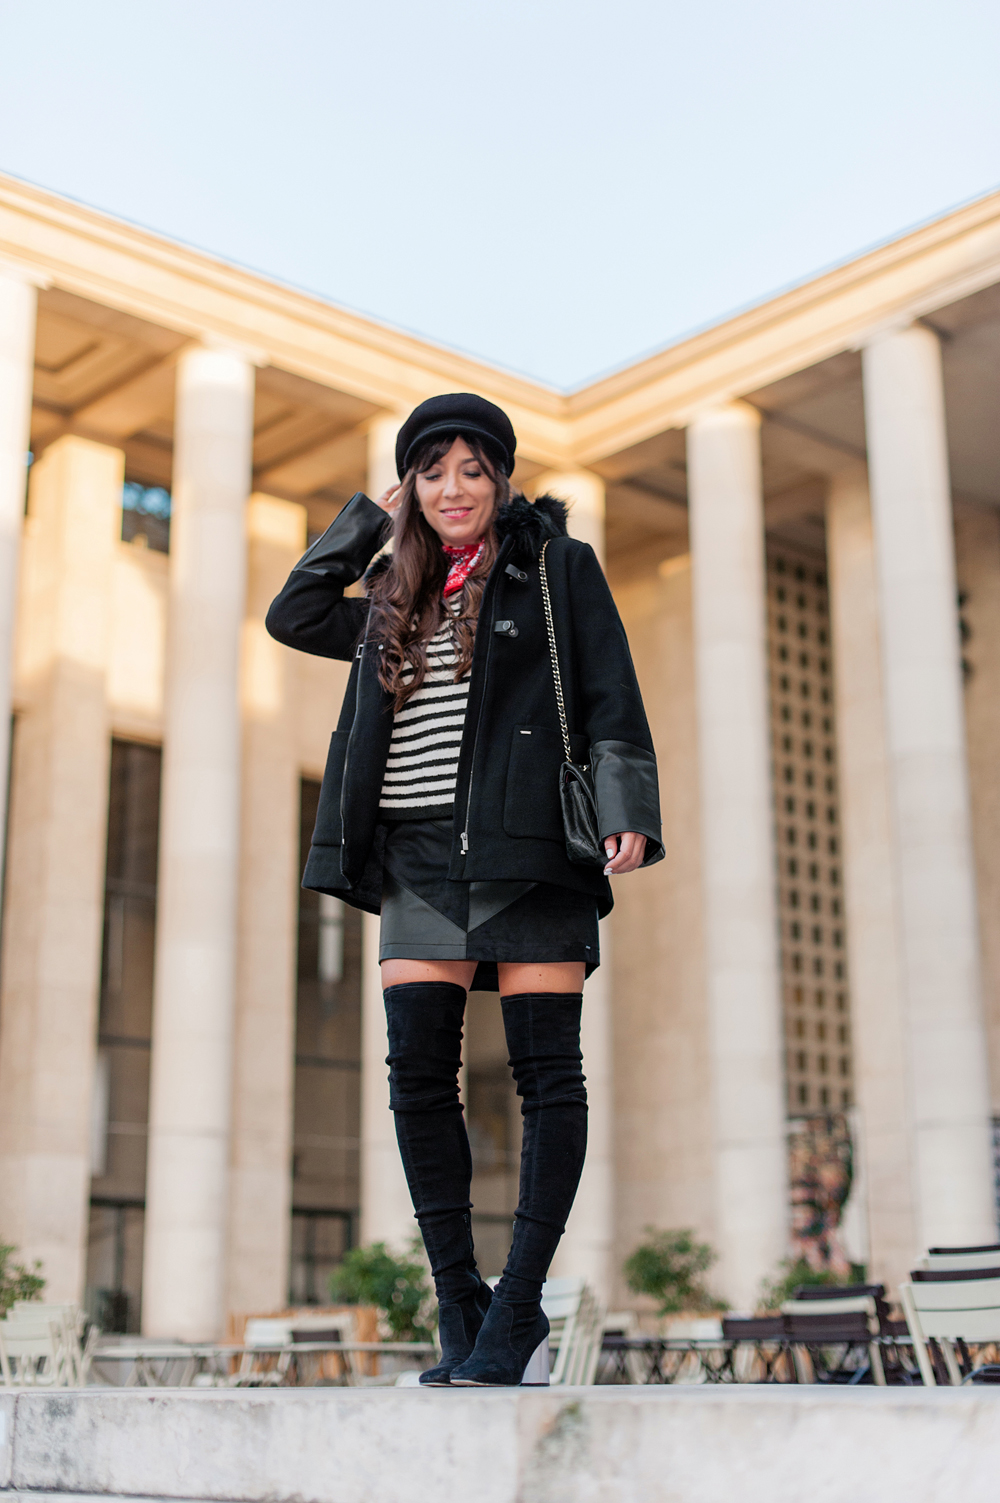 marieluvpink-blog-mode-paris-elora-2